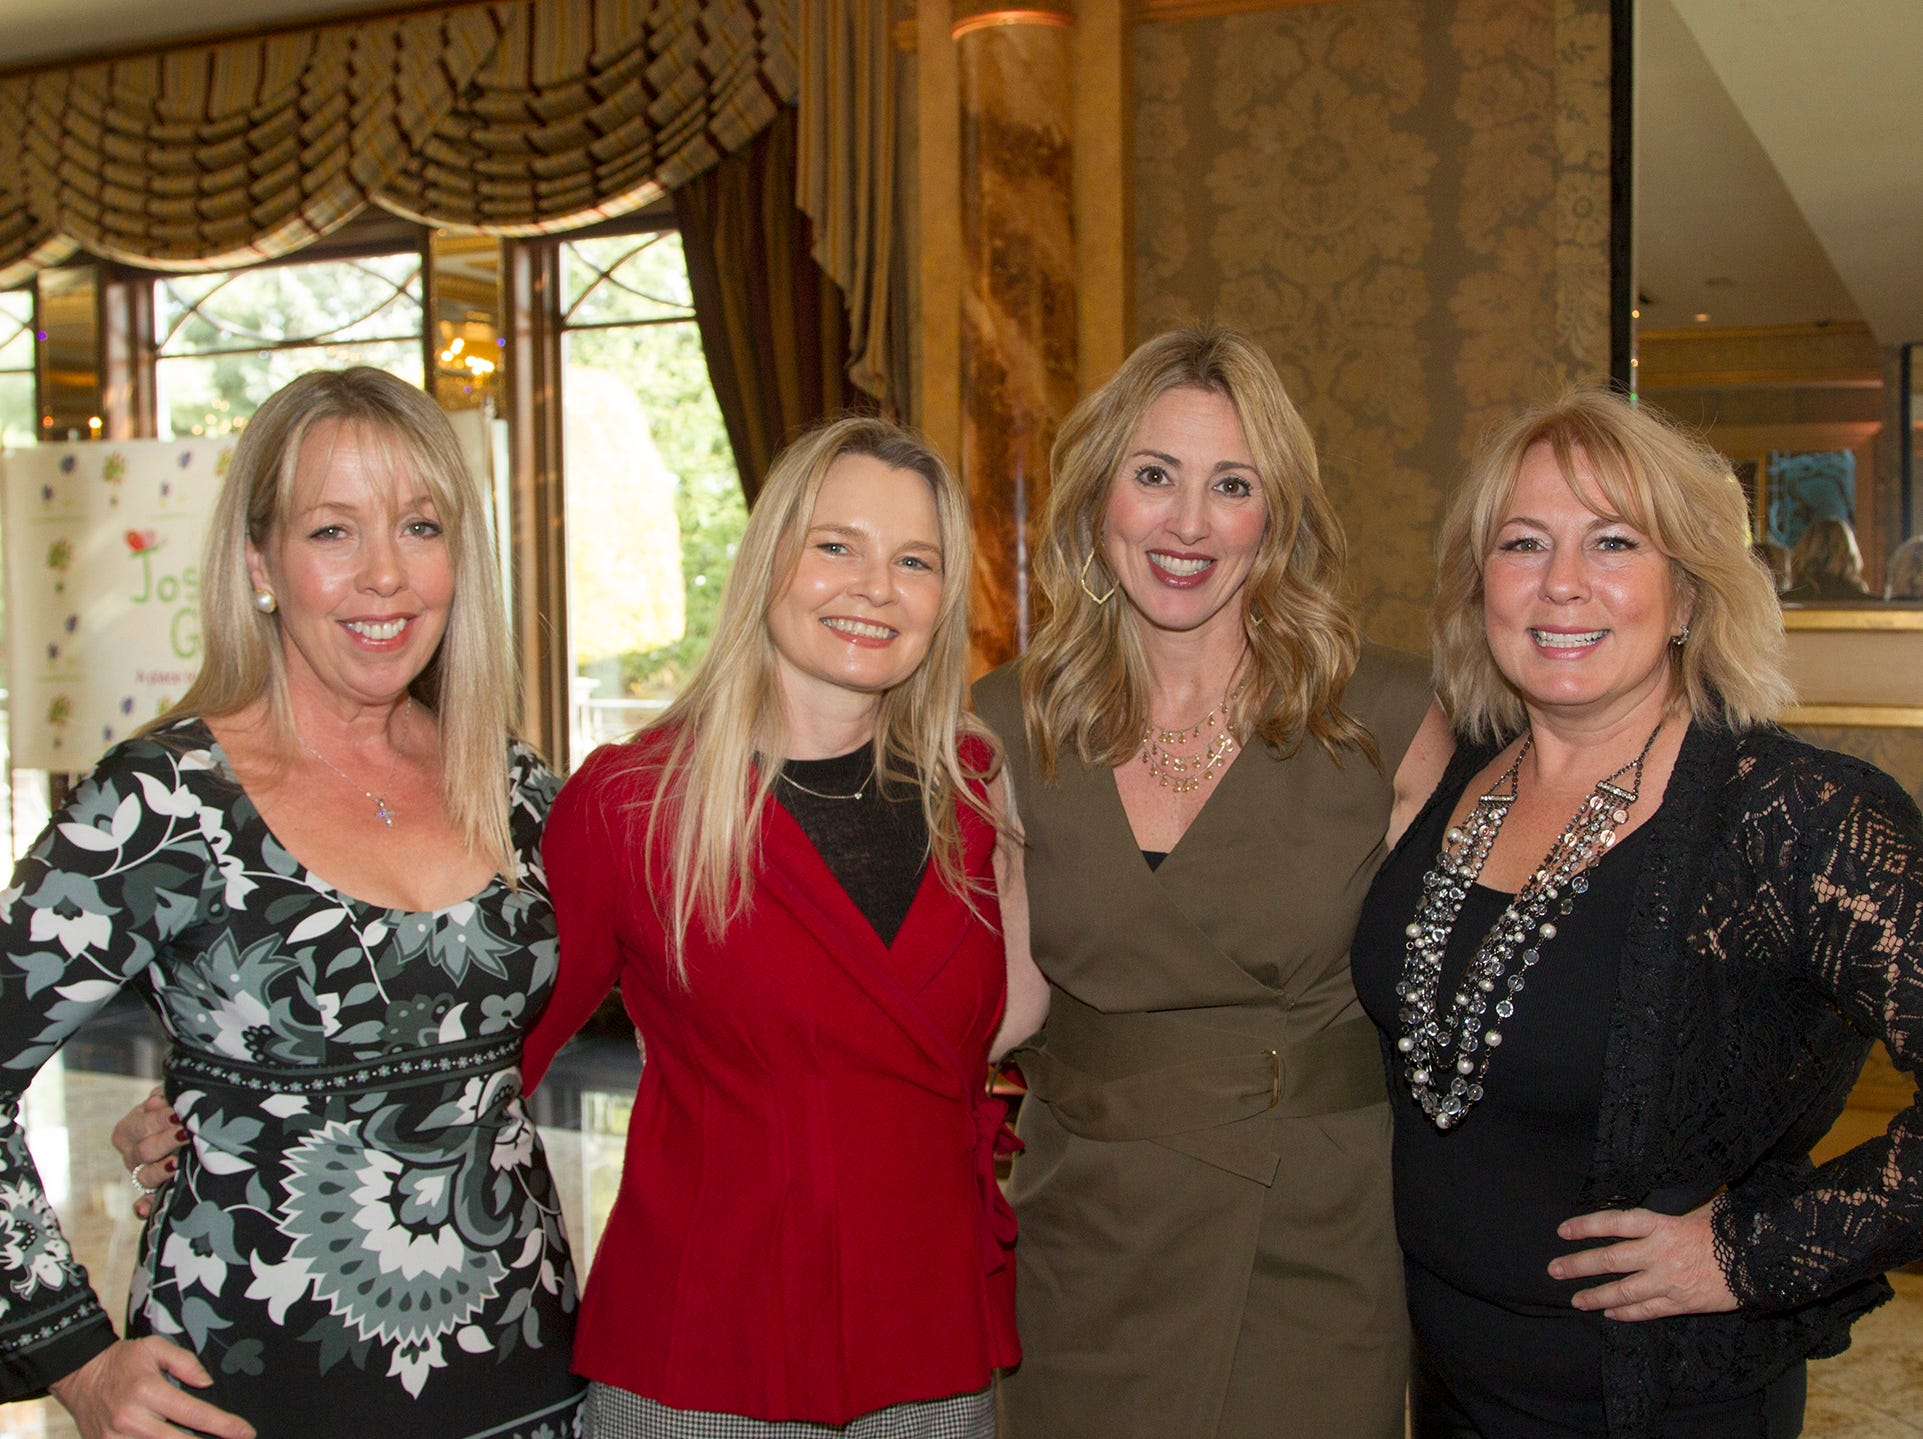 Suzy Antaki, Ute Detancourt, Lisa Cavallo, Heidi Rispoli. Josephine's Garden, part of Hackensack Meridian Health, held its luncheon gala at Season's in Washington Township. The mission of this organization is to provide a place of respite, joy and hope to children battling cancer. 11/14/2018